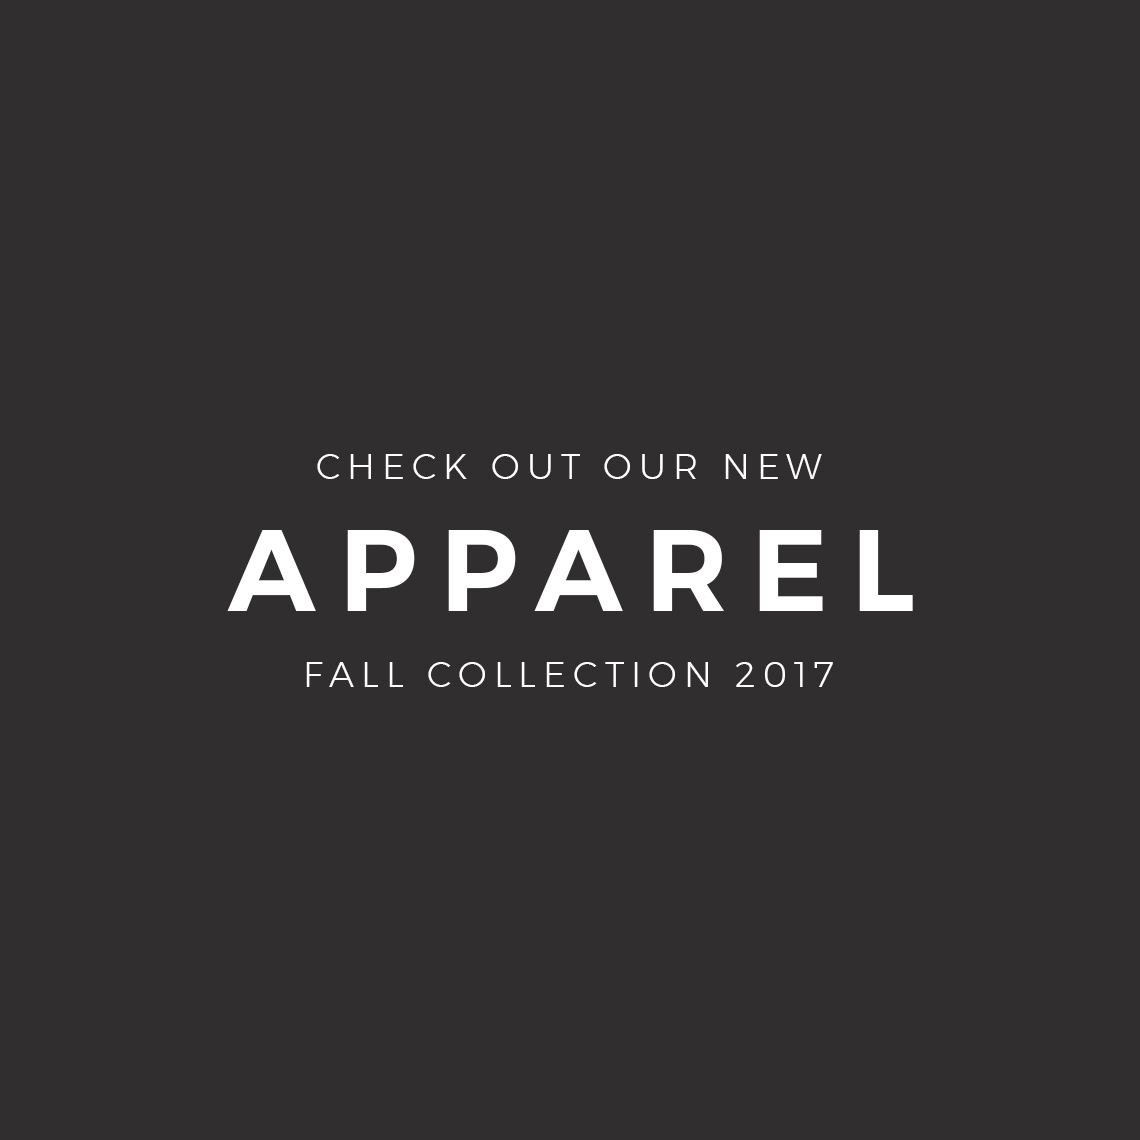 Fall Collection 2017